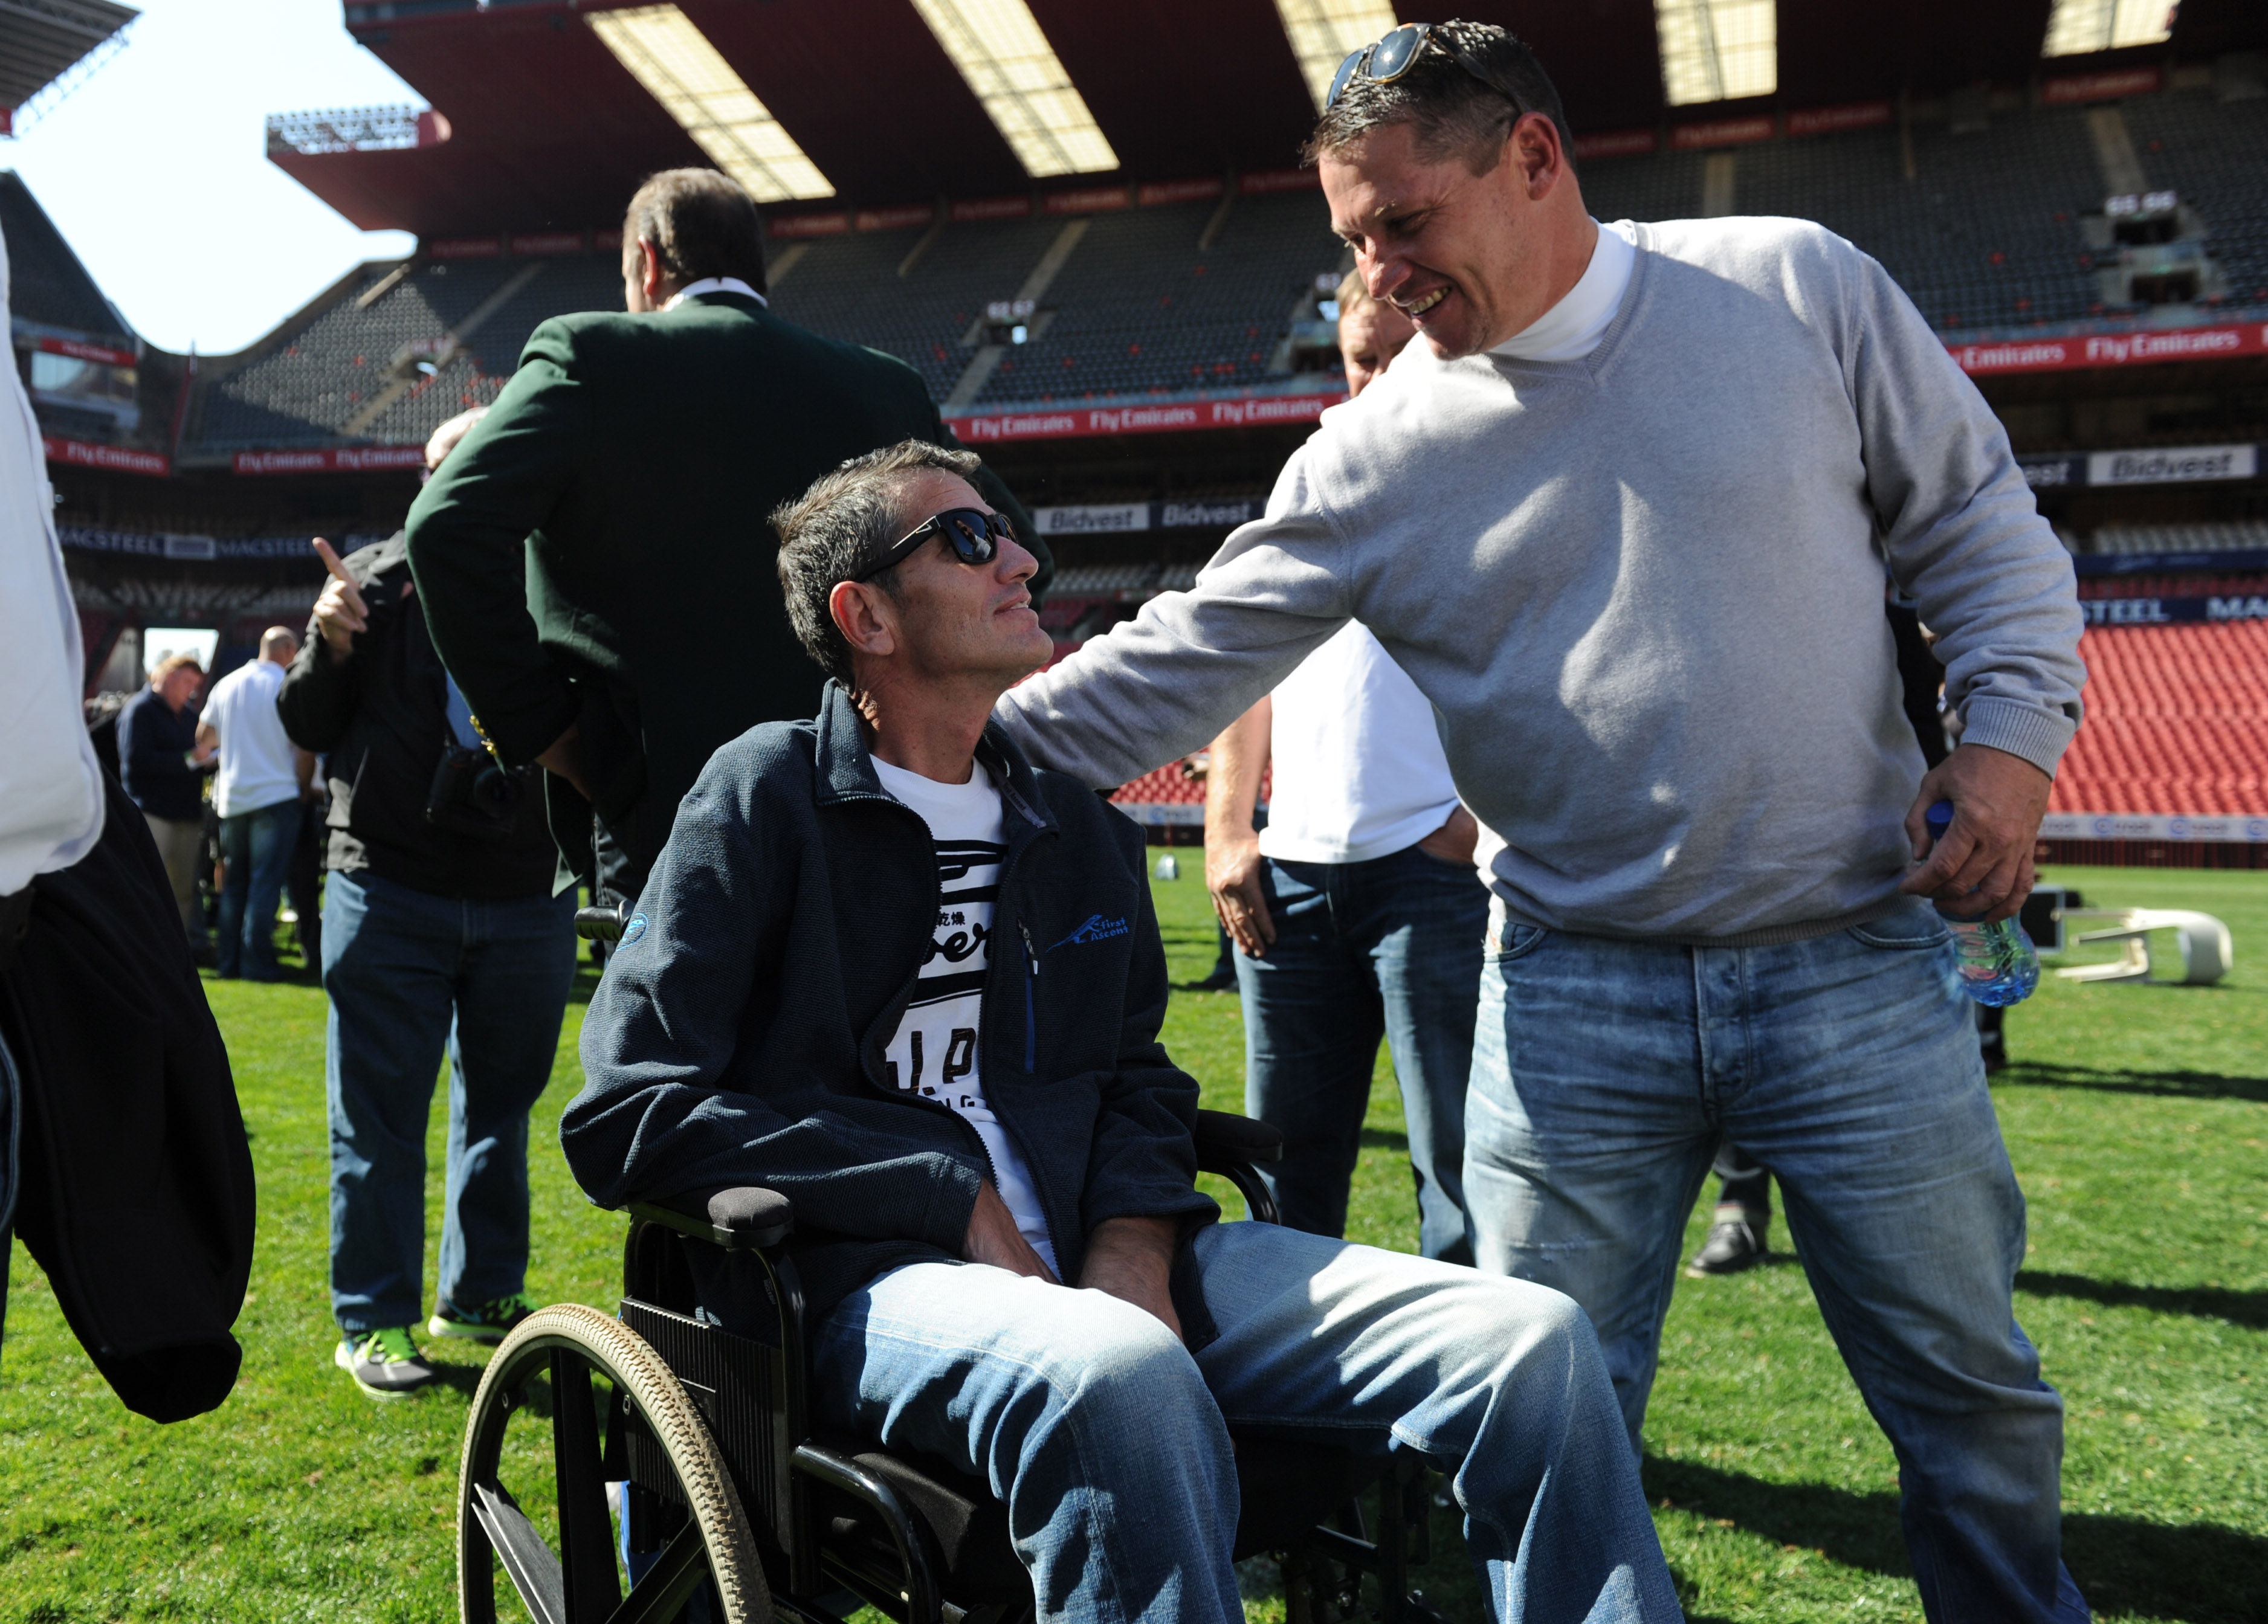 File: James Small greets Joost van der Westhuizen during an event celebrating the 20th anniversary of the epic 1995 Rugby World Cup on June 24, 2015 at Ellis Park in Johannesburg, South Africa.